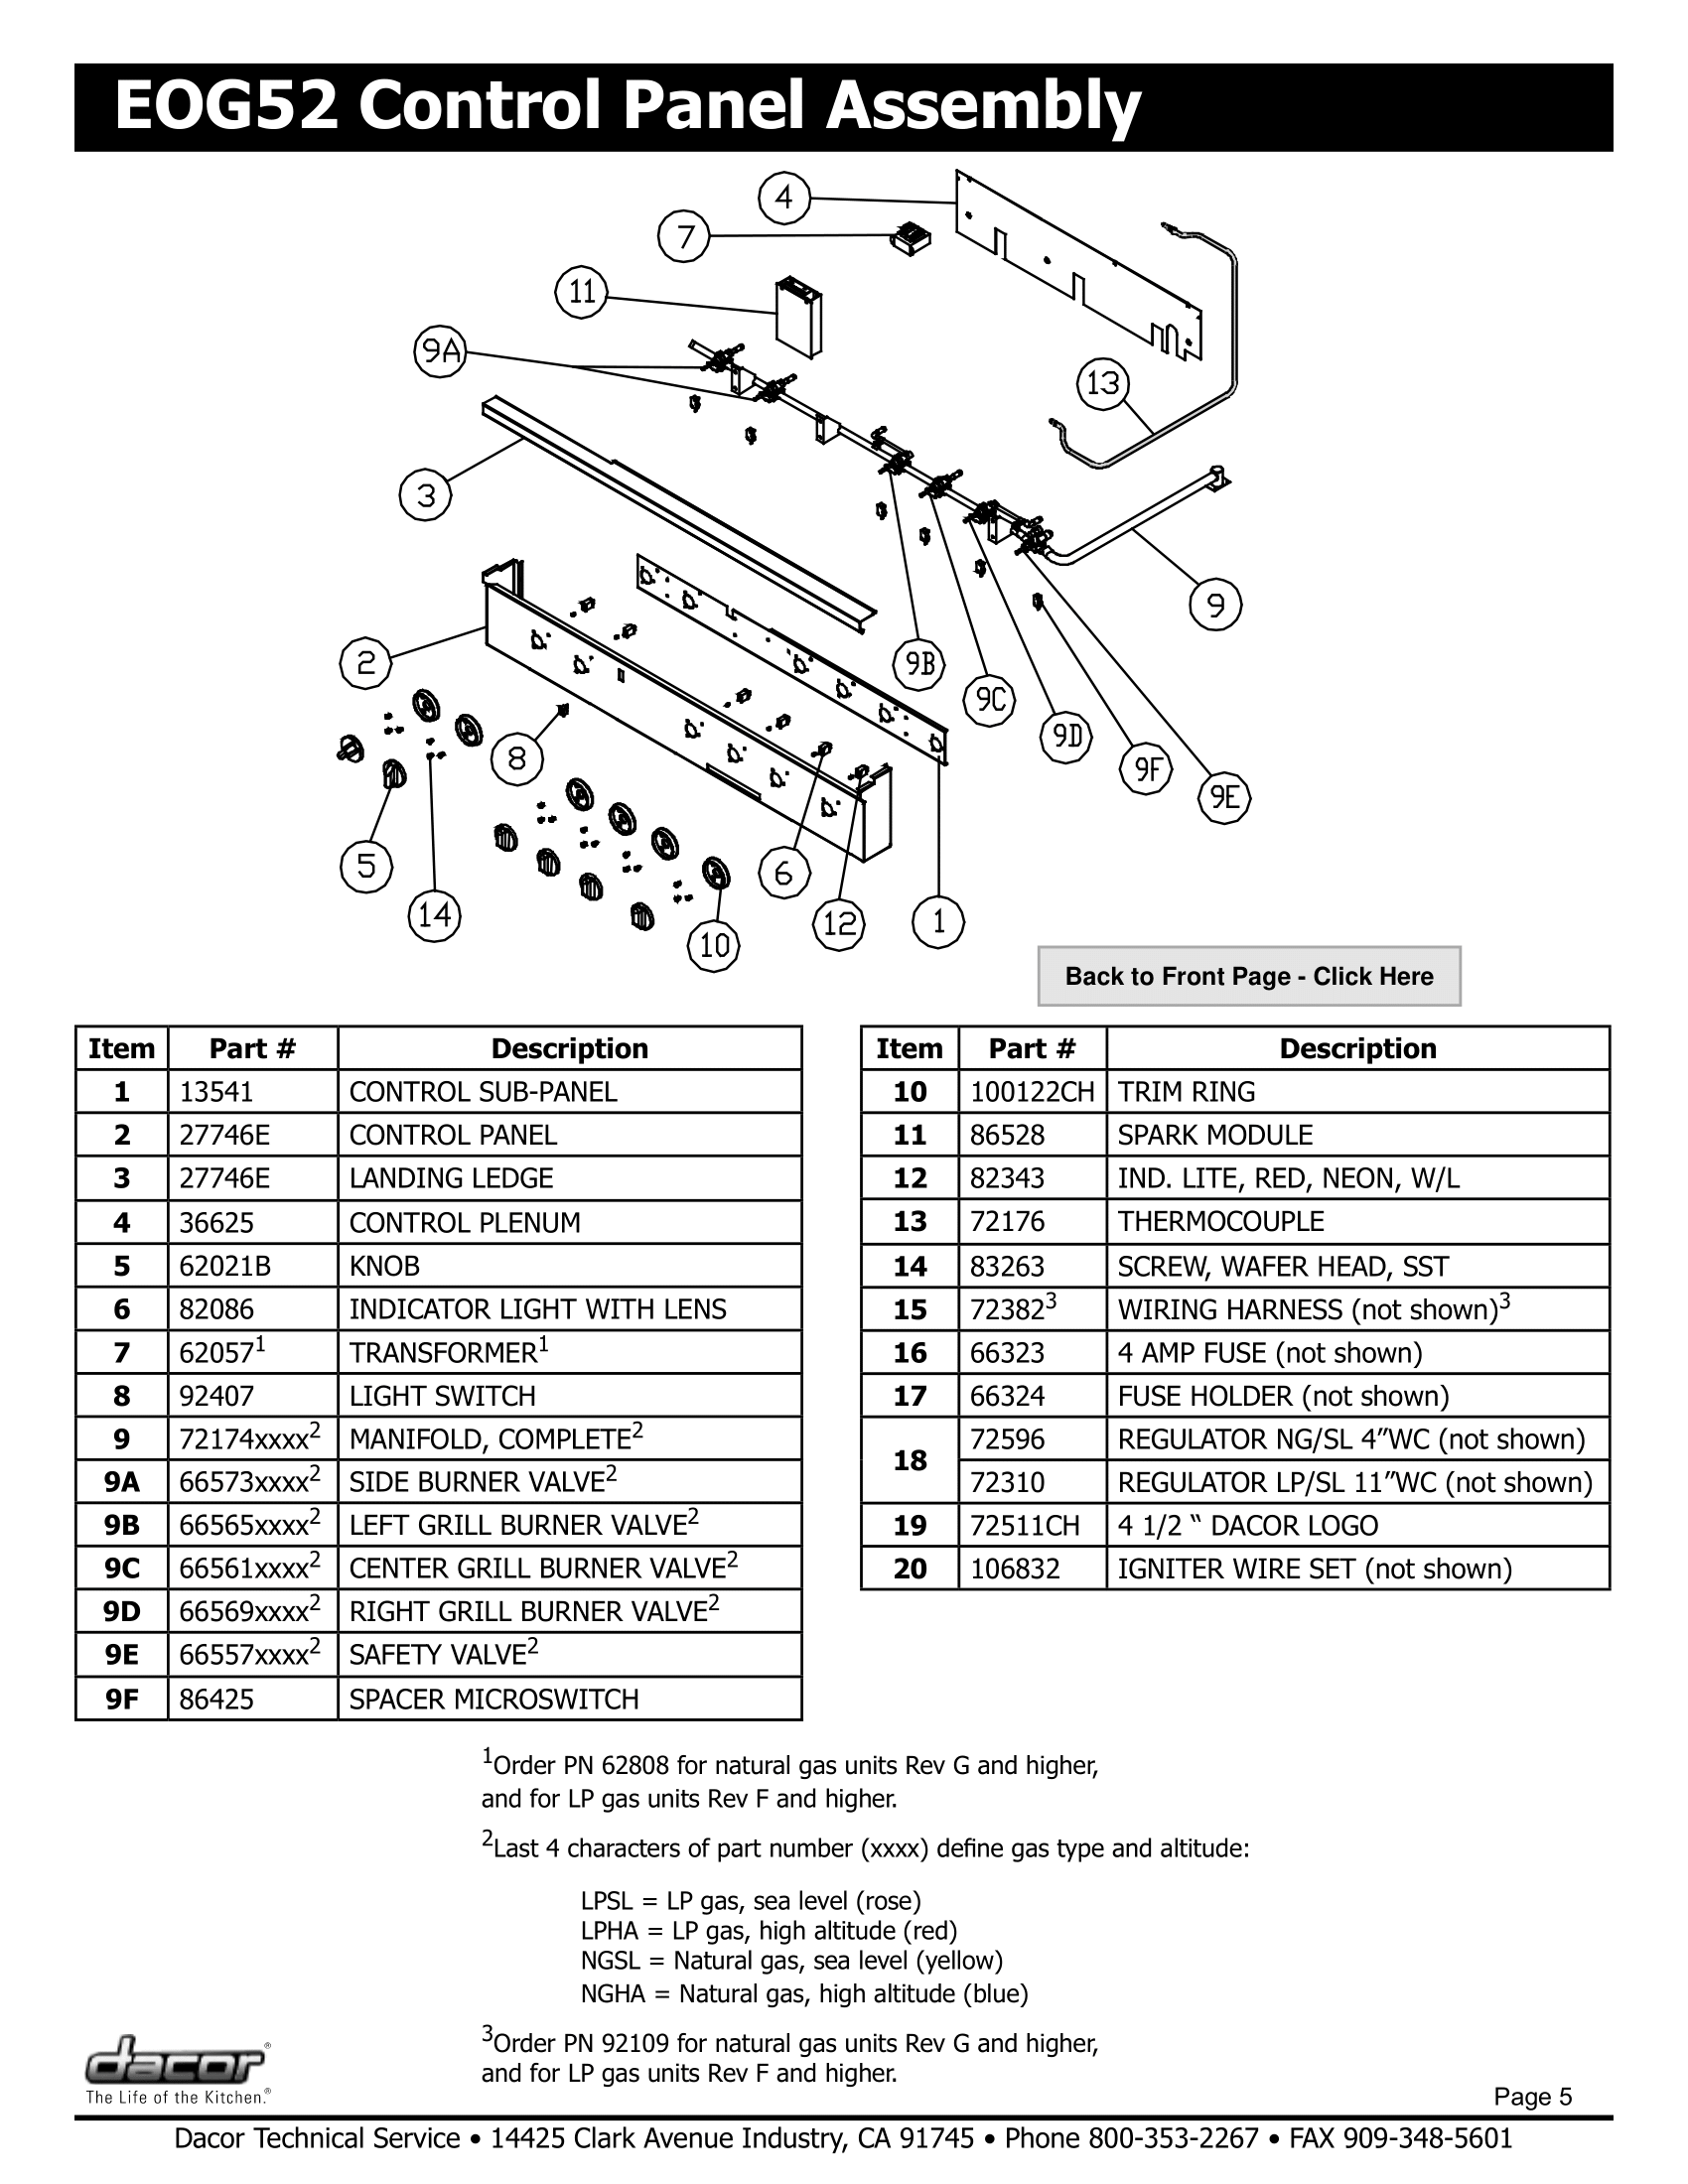 Dacor EOG52 Control Panel Assembly Schematic